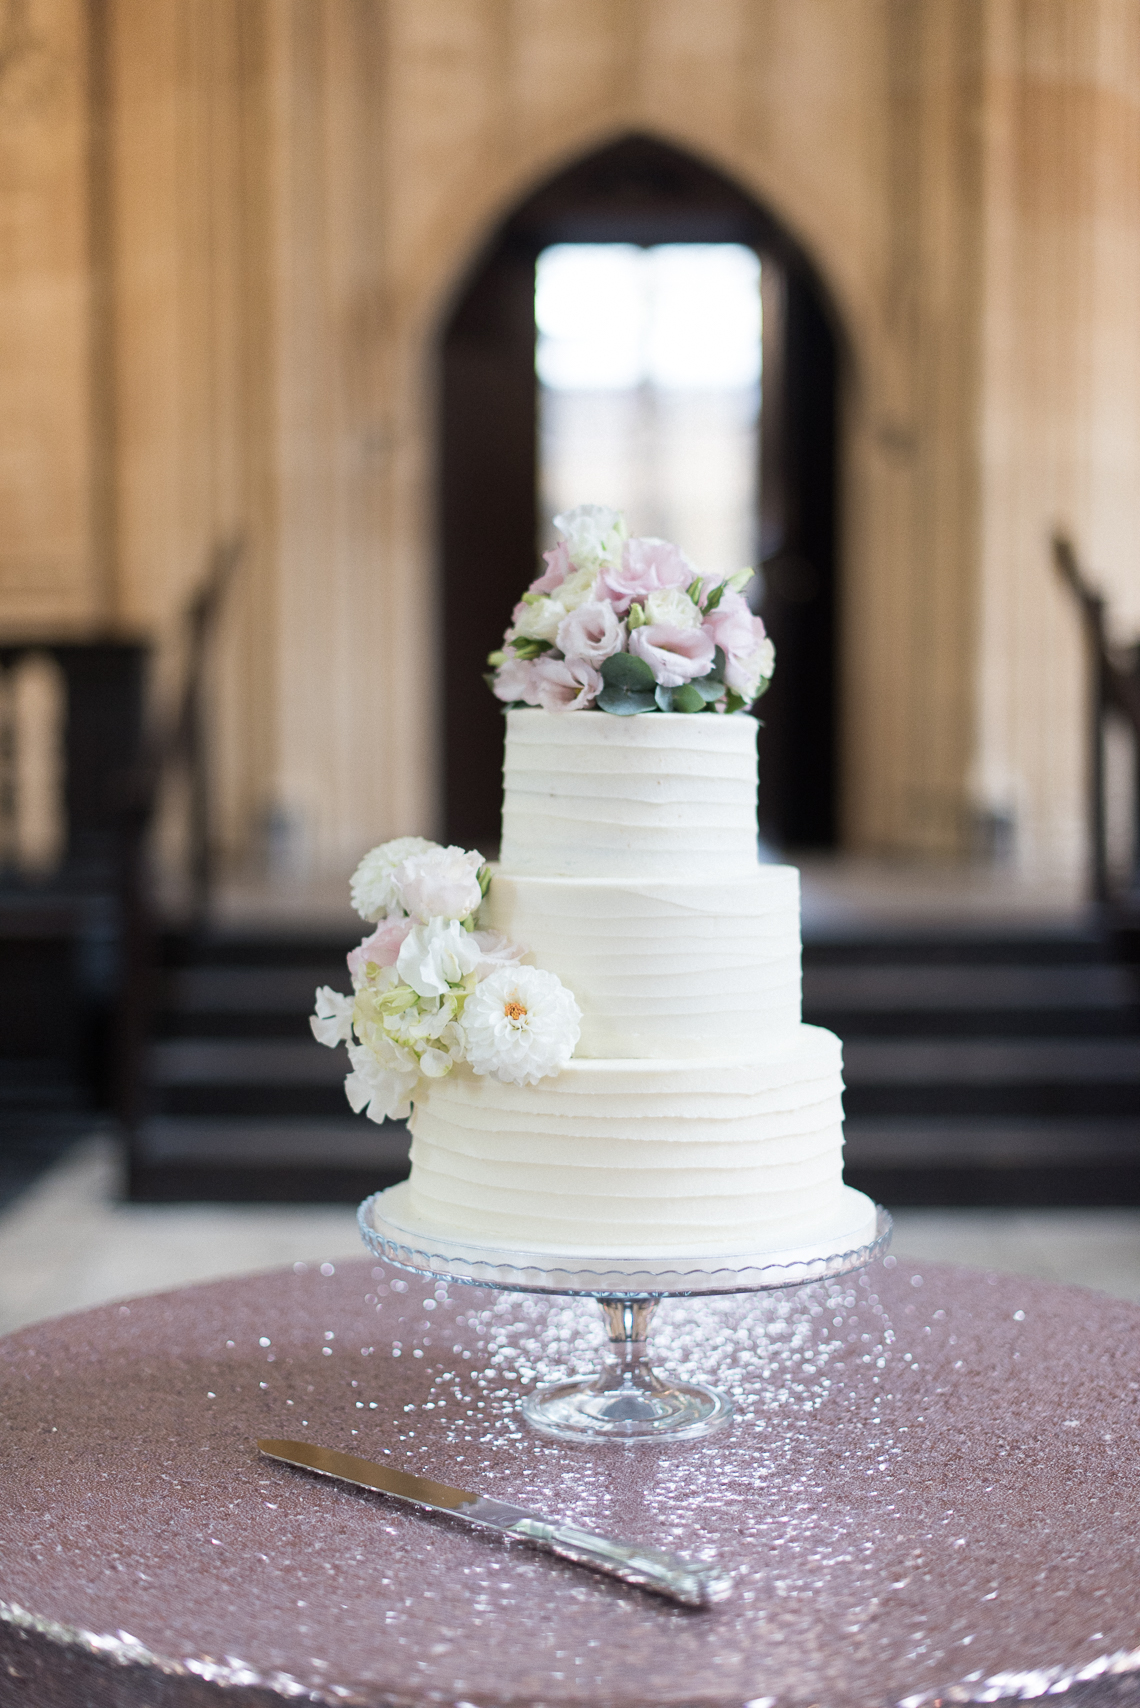 Exquisite Vow Renewal in Oxford - BLOVED Blog